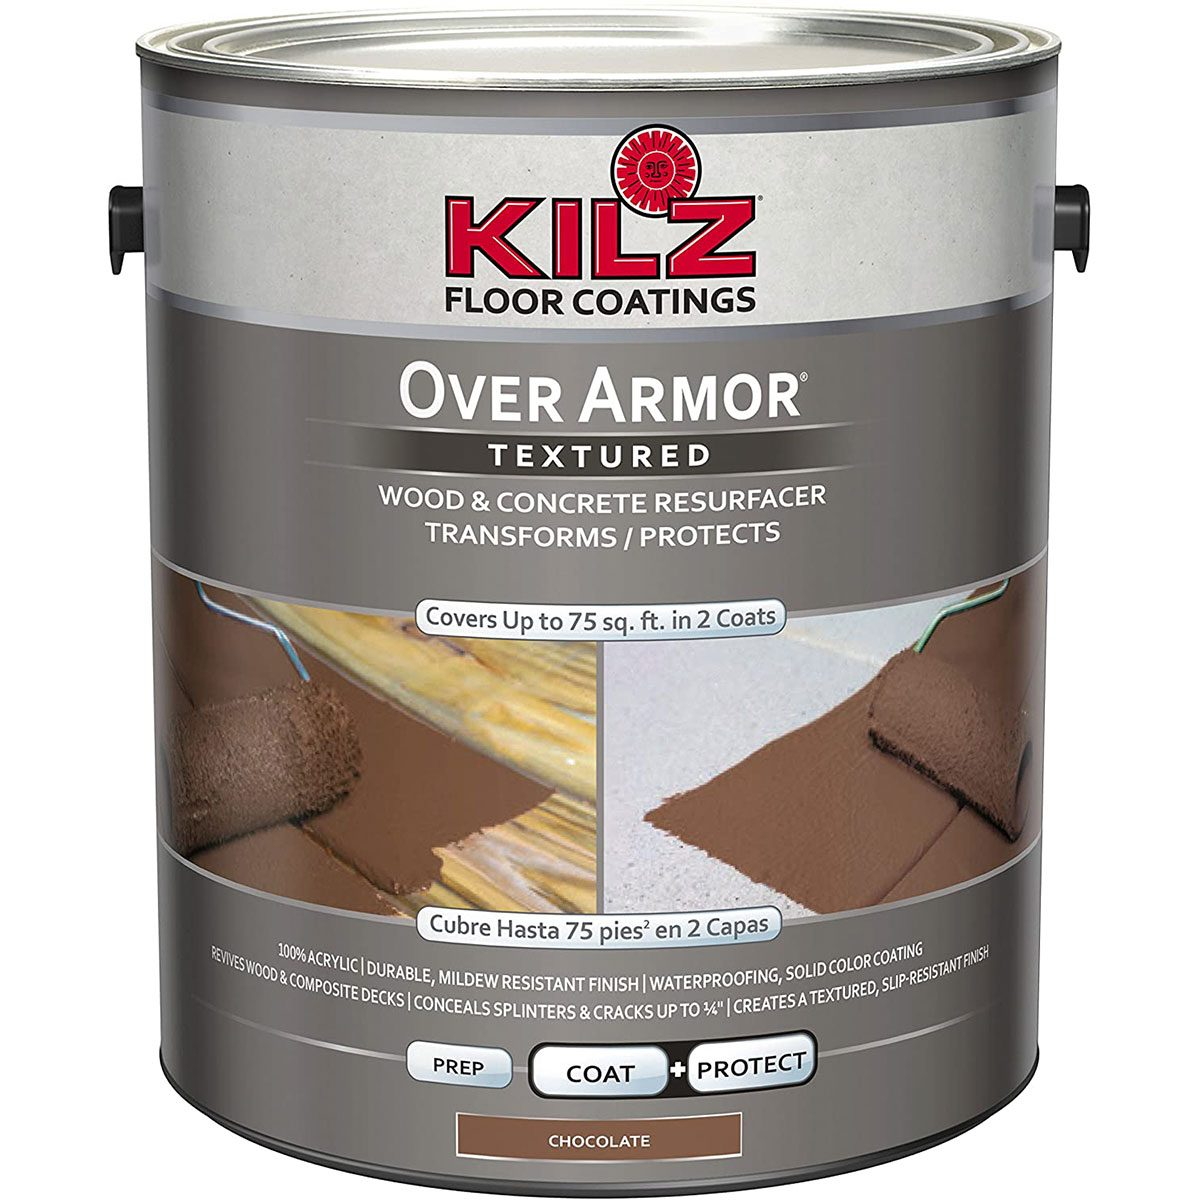 Can of Kils textured wood coating